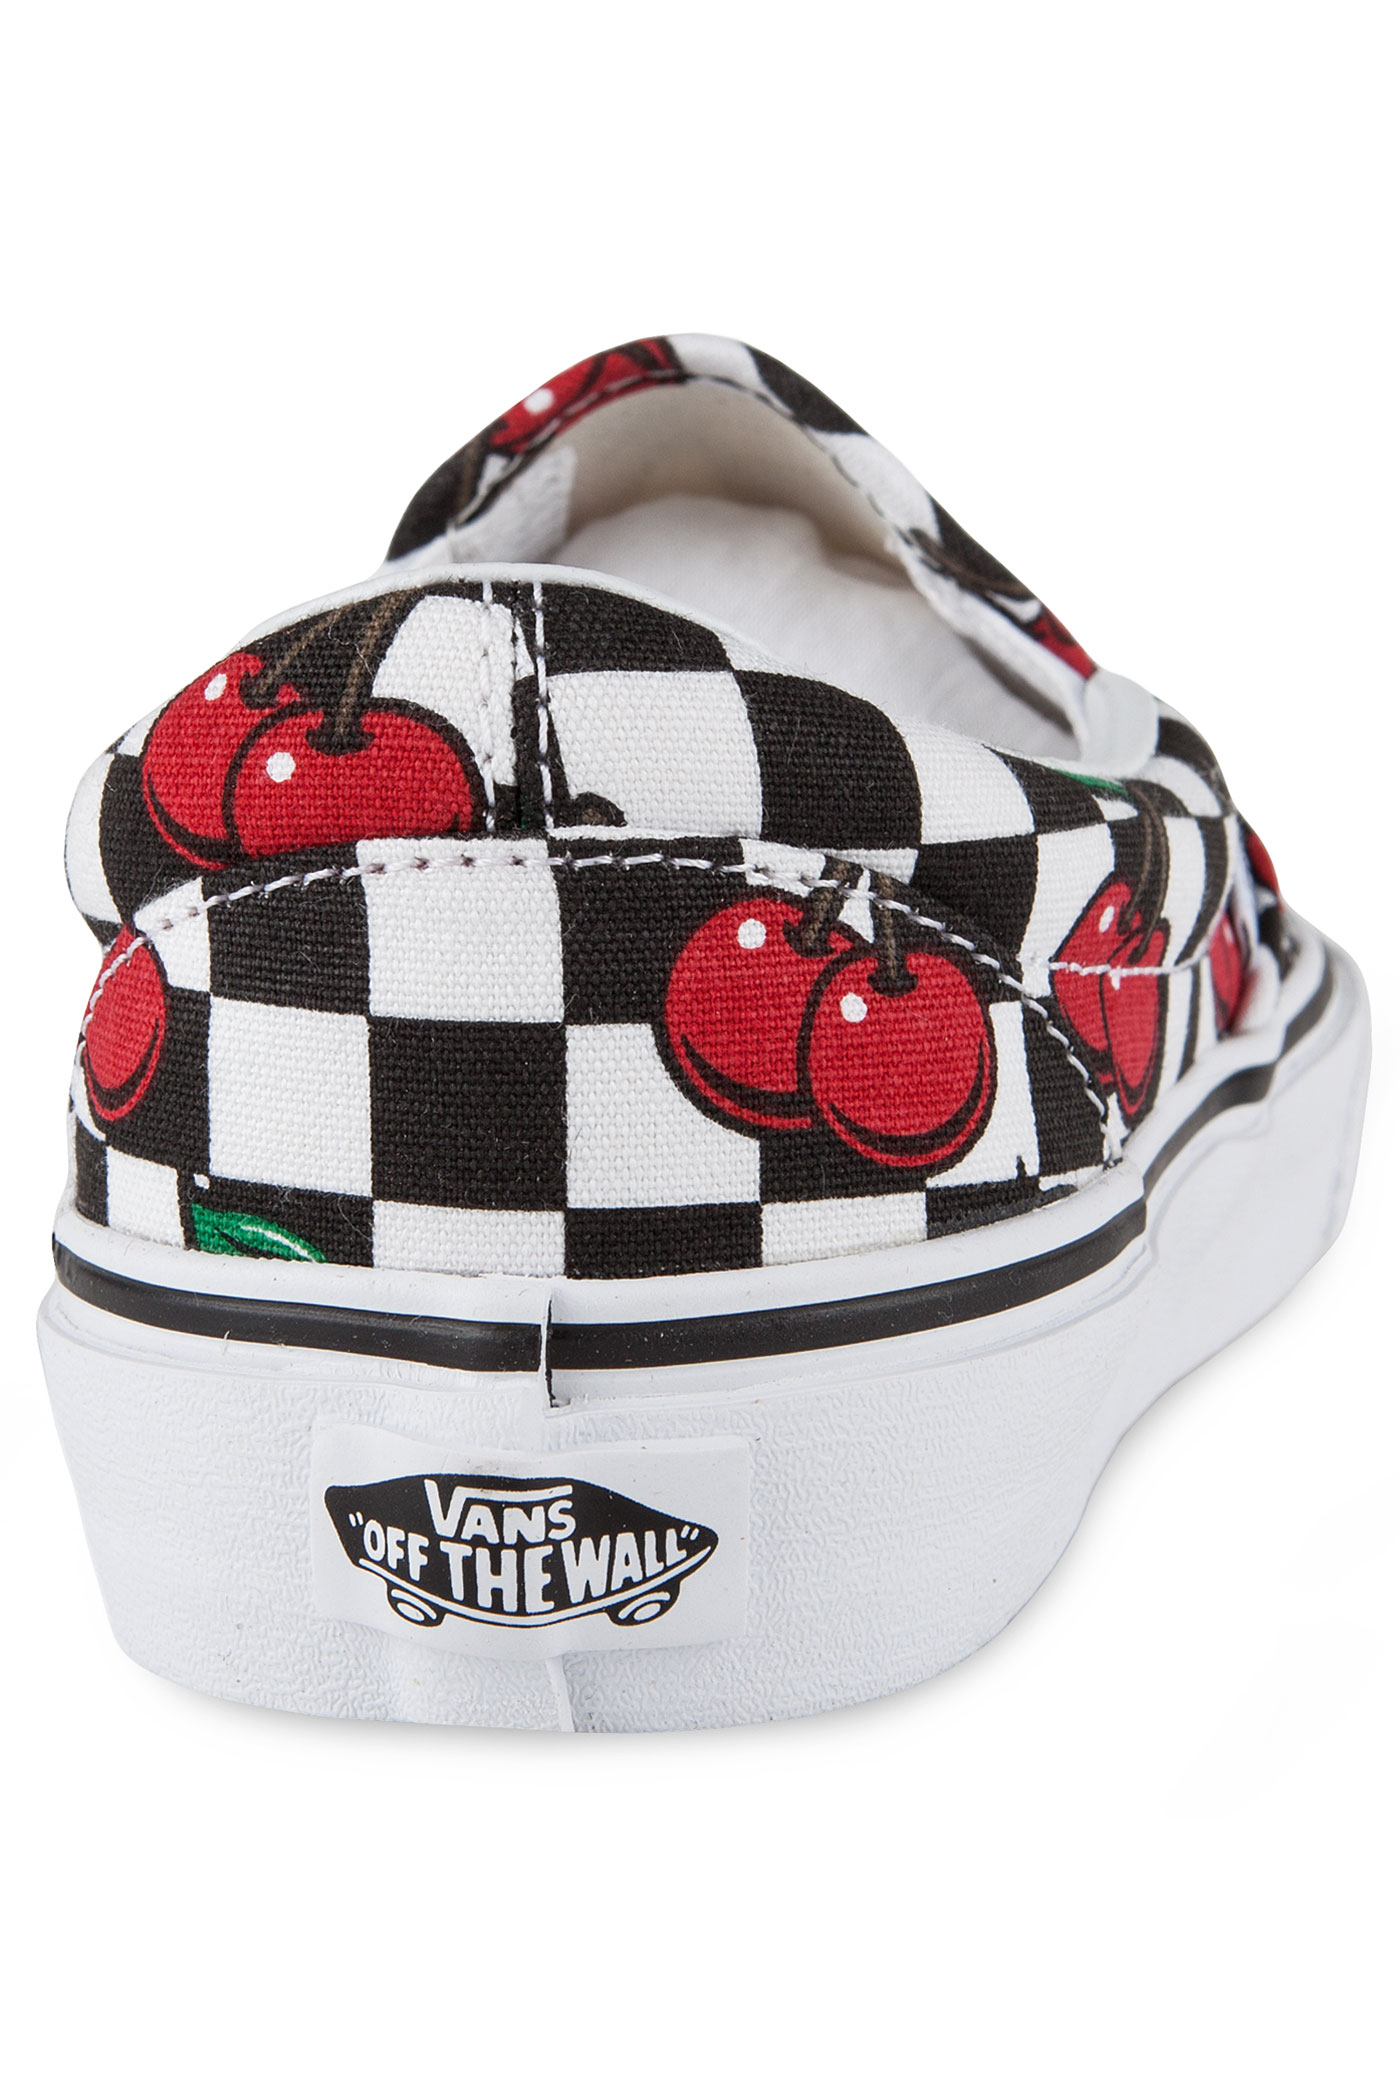 vans classic slip on schuh women cherry checkers black true white kaufen bei skatedeluxe. Black Bedroom Furniture Sets. Home Design Ideas